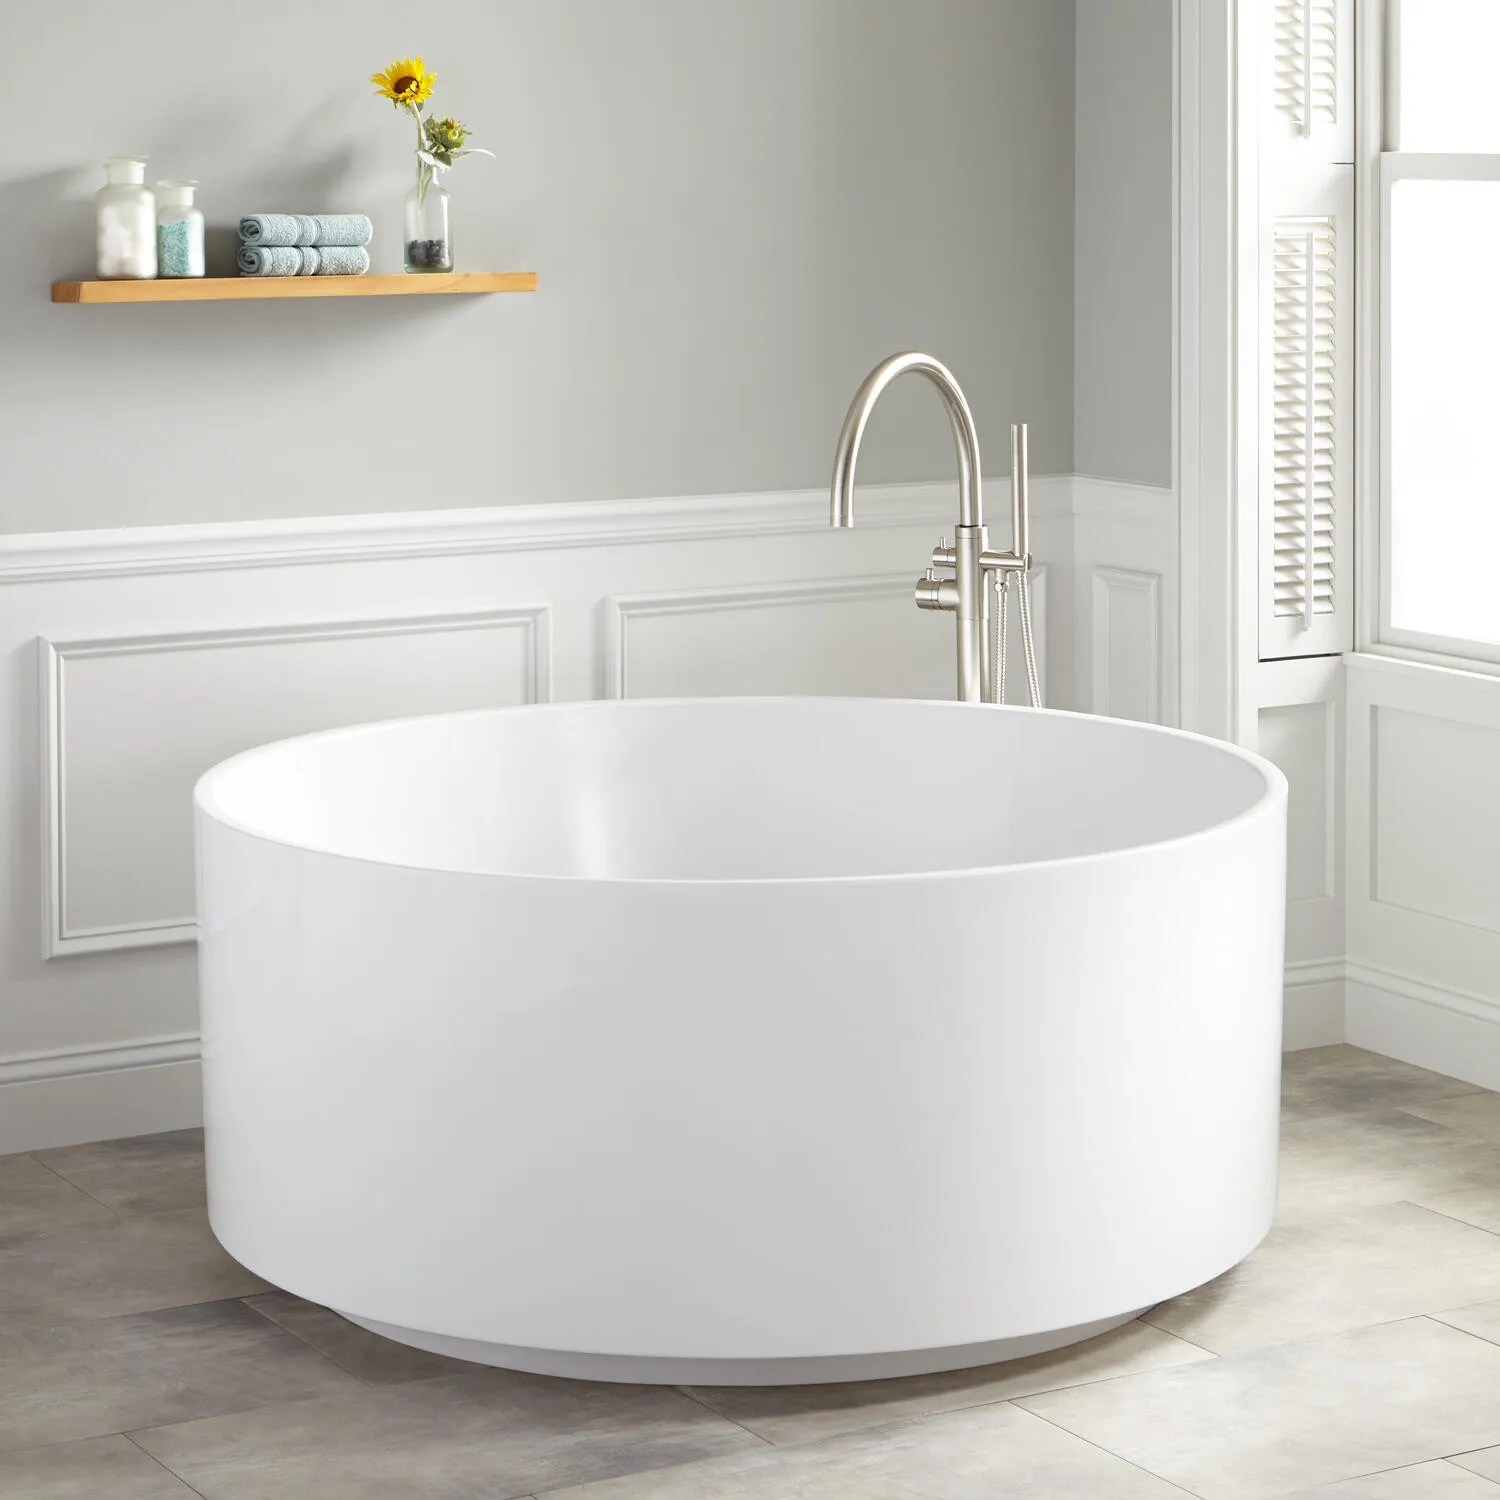 55 Dempsey Round Acrylic Freestanding Tub  Bathroom